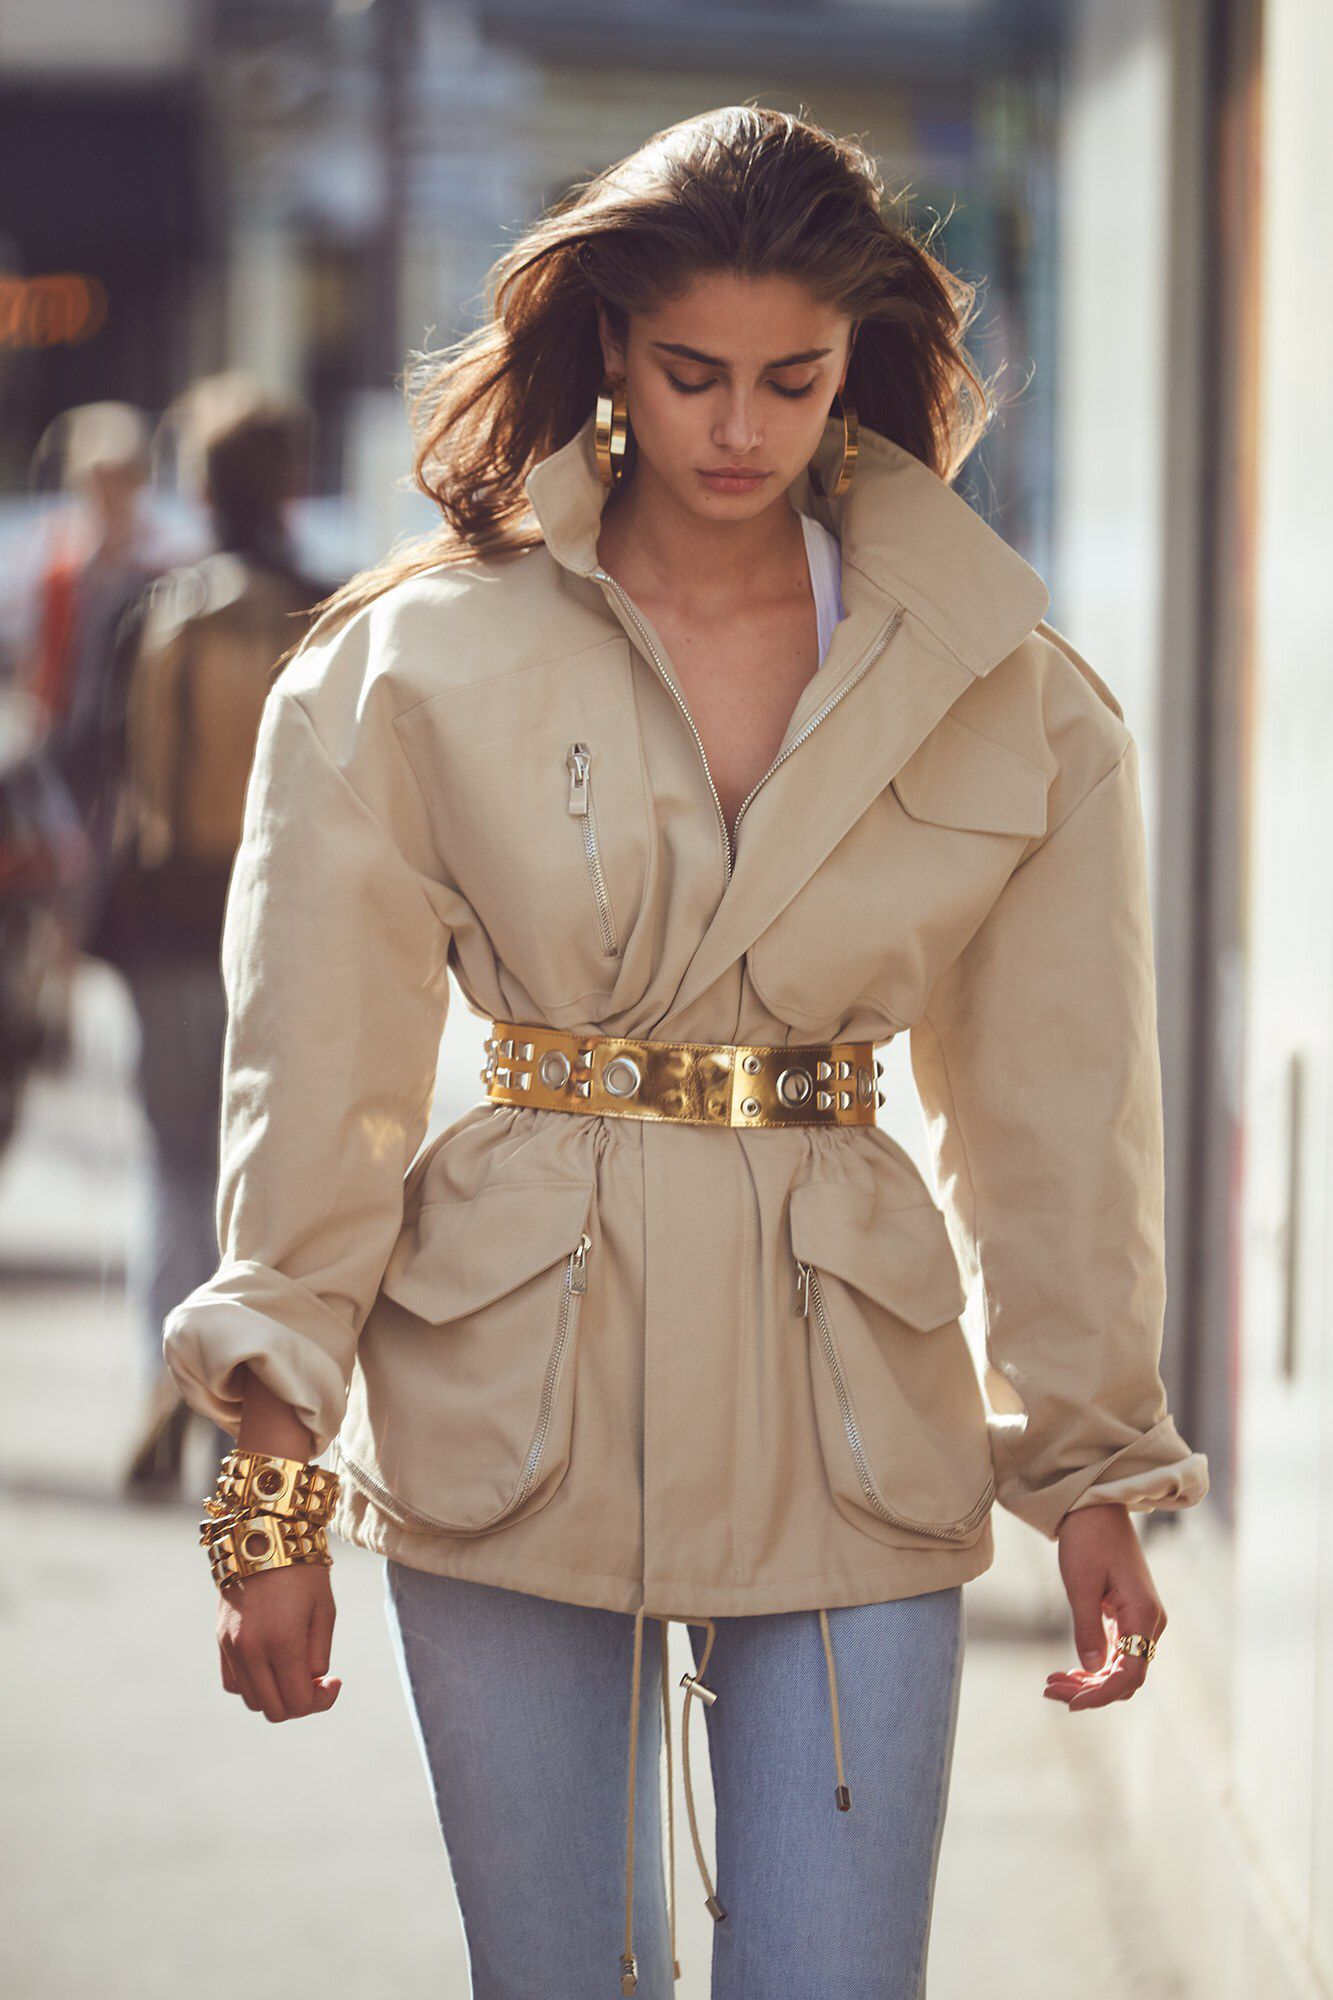 In Fashion | Autumn Style Inspiration: The Utility Jacket